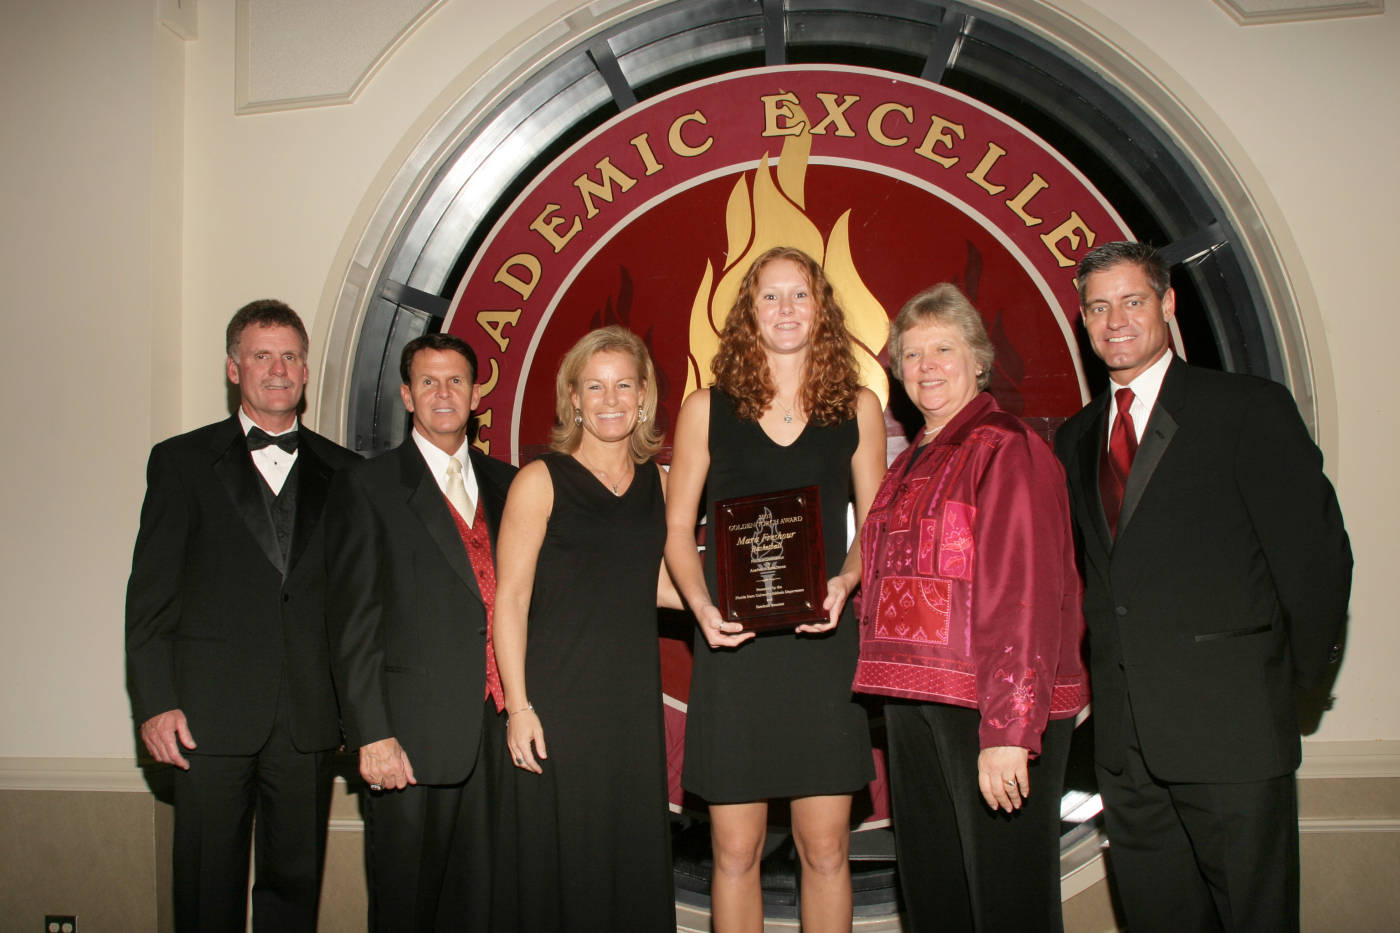 Women's Basketball's 2006-07 Golden Torch Award winner, Mara Freshour.